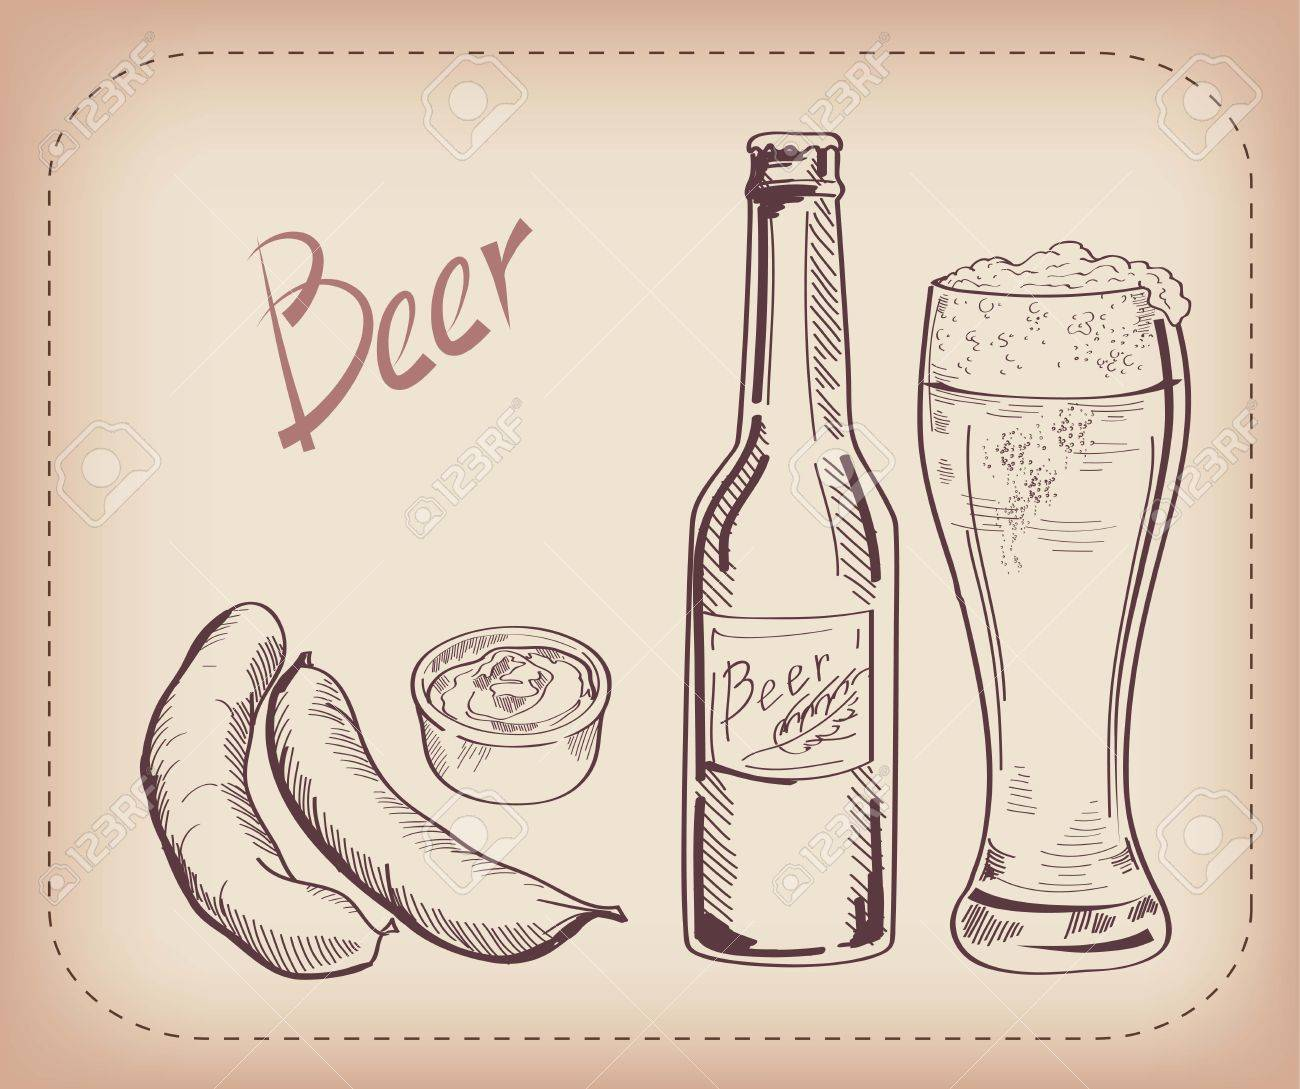 vector sketch of a pint of beer, made by hand - 29575141